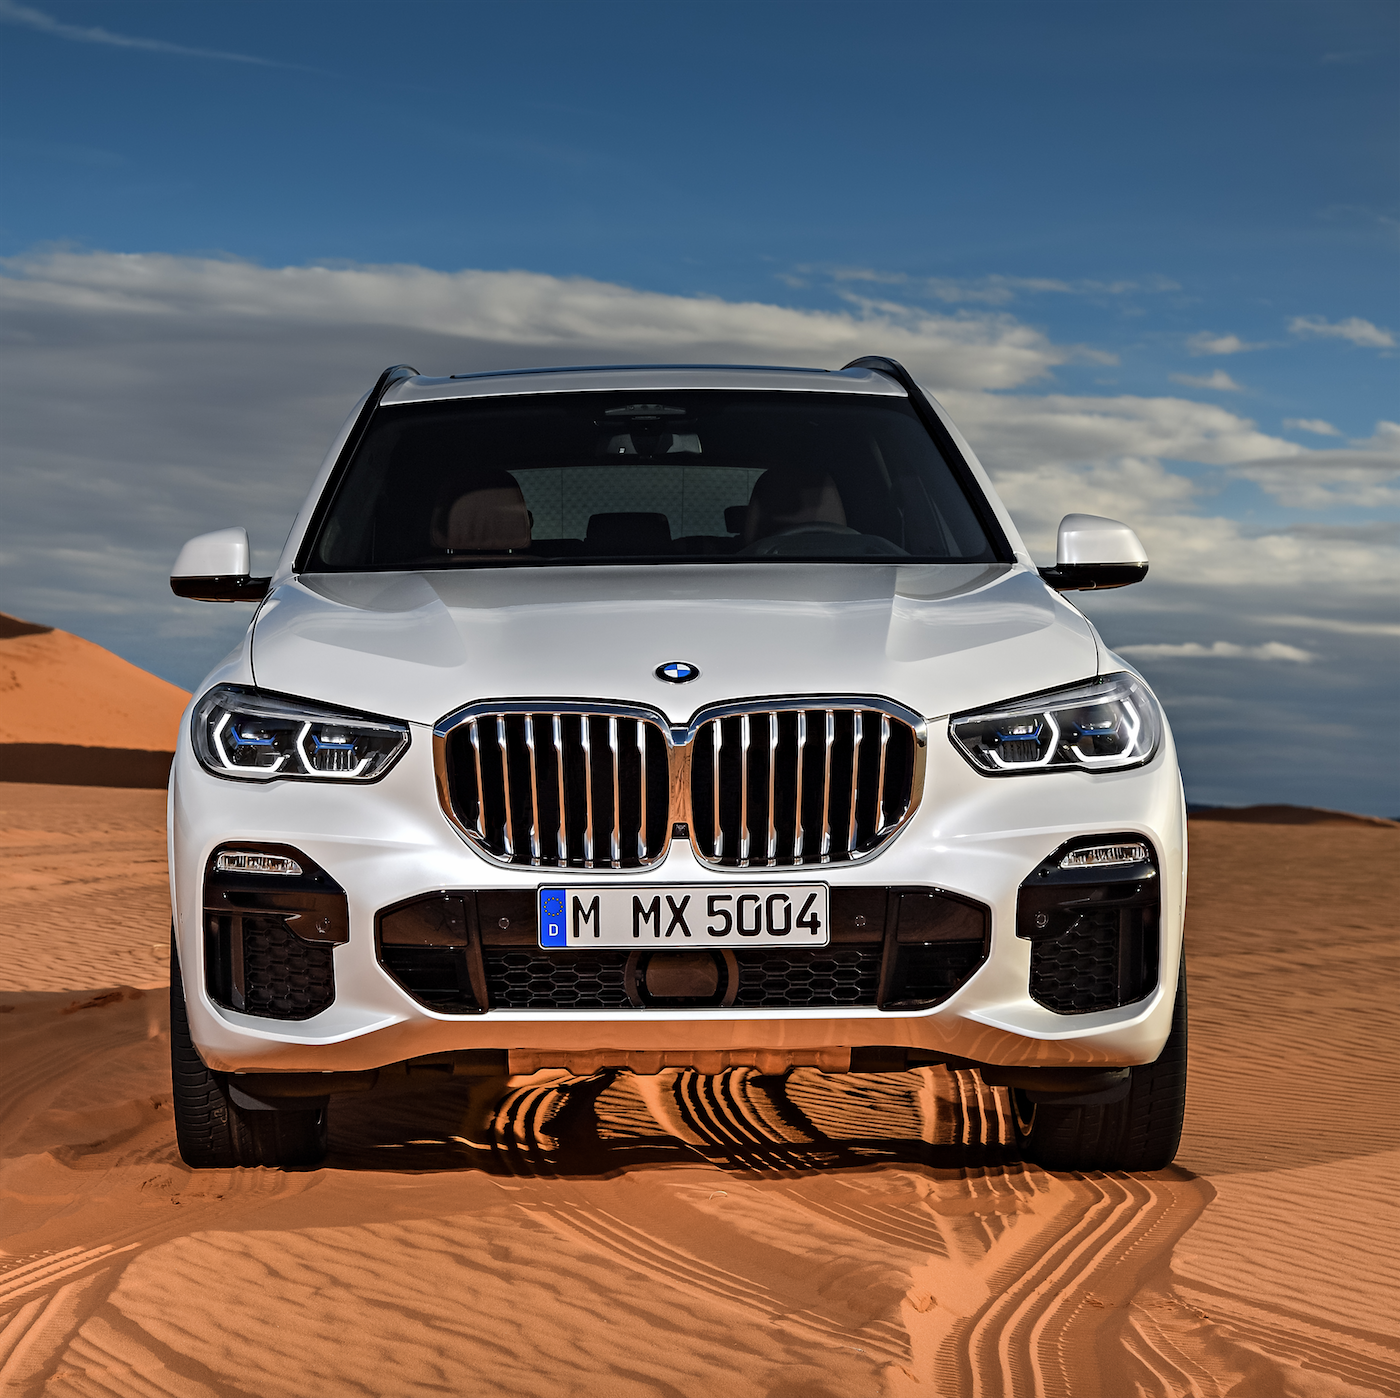 72 The Best 2019 Bmw X5 Release Date Style